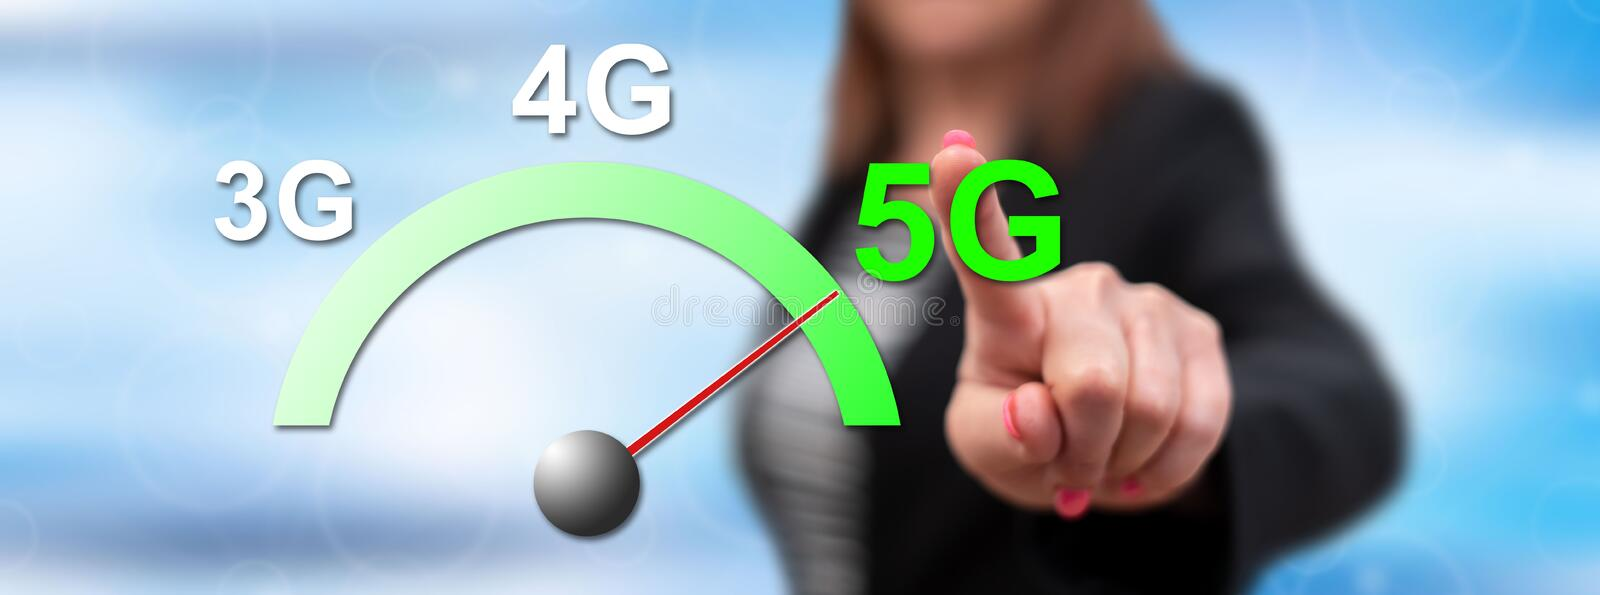 Woman touching a 5g concept royalty free stock images